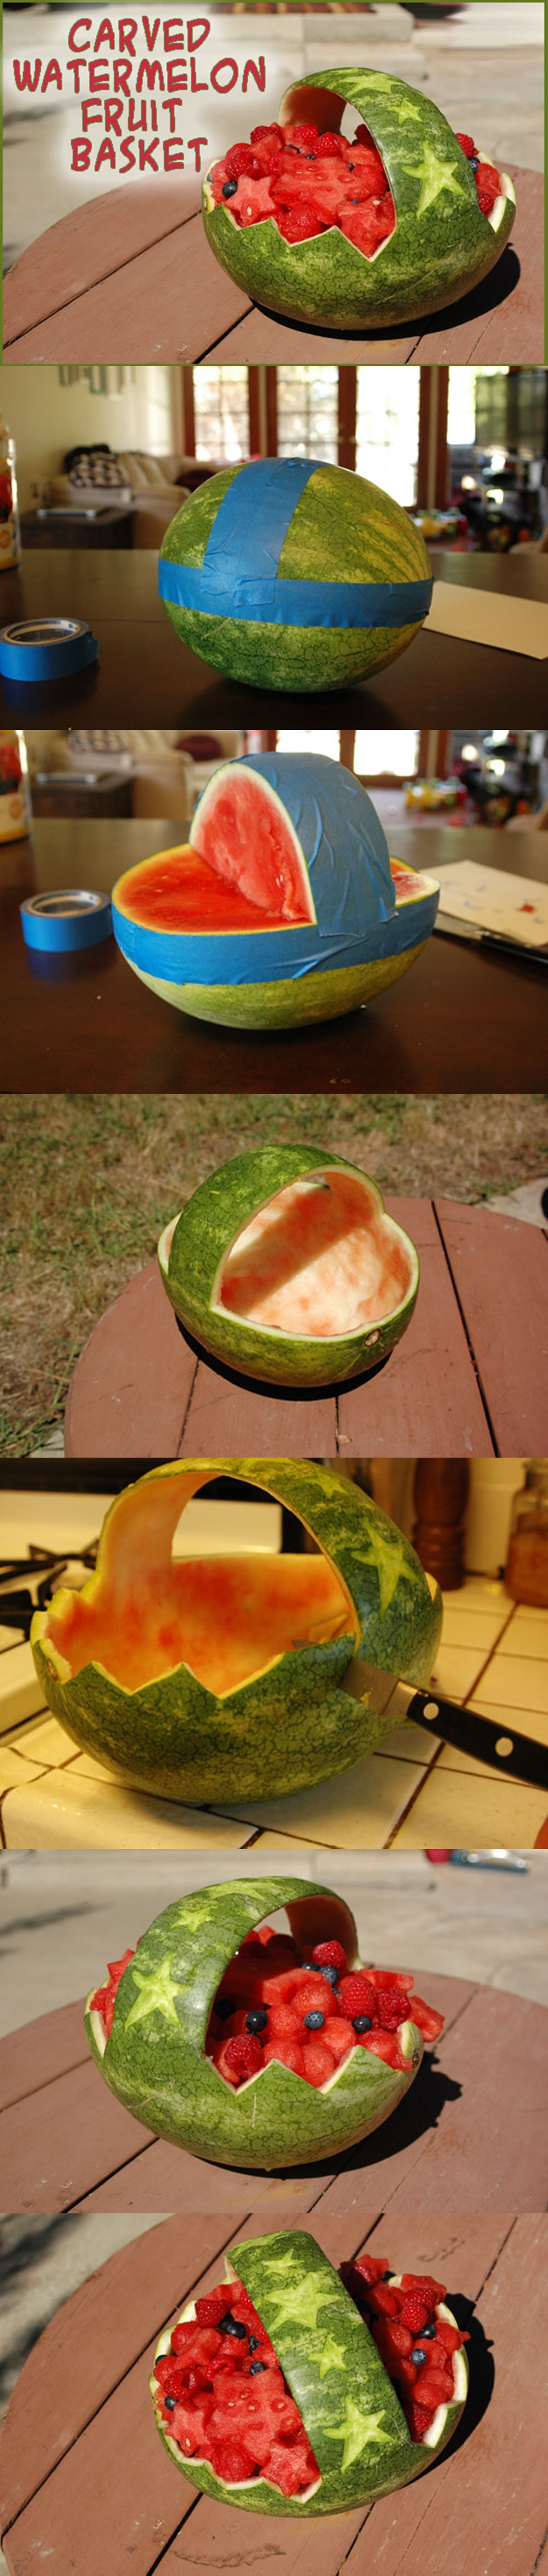 Carved Watermelon Fruit Basket